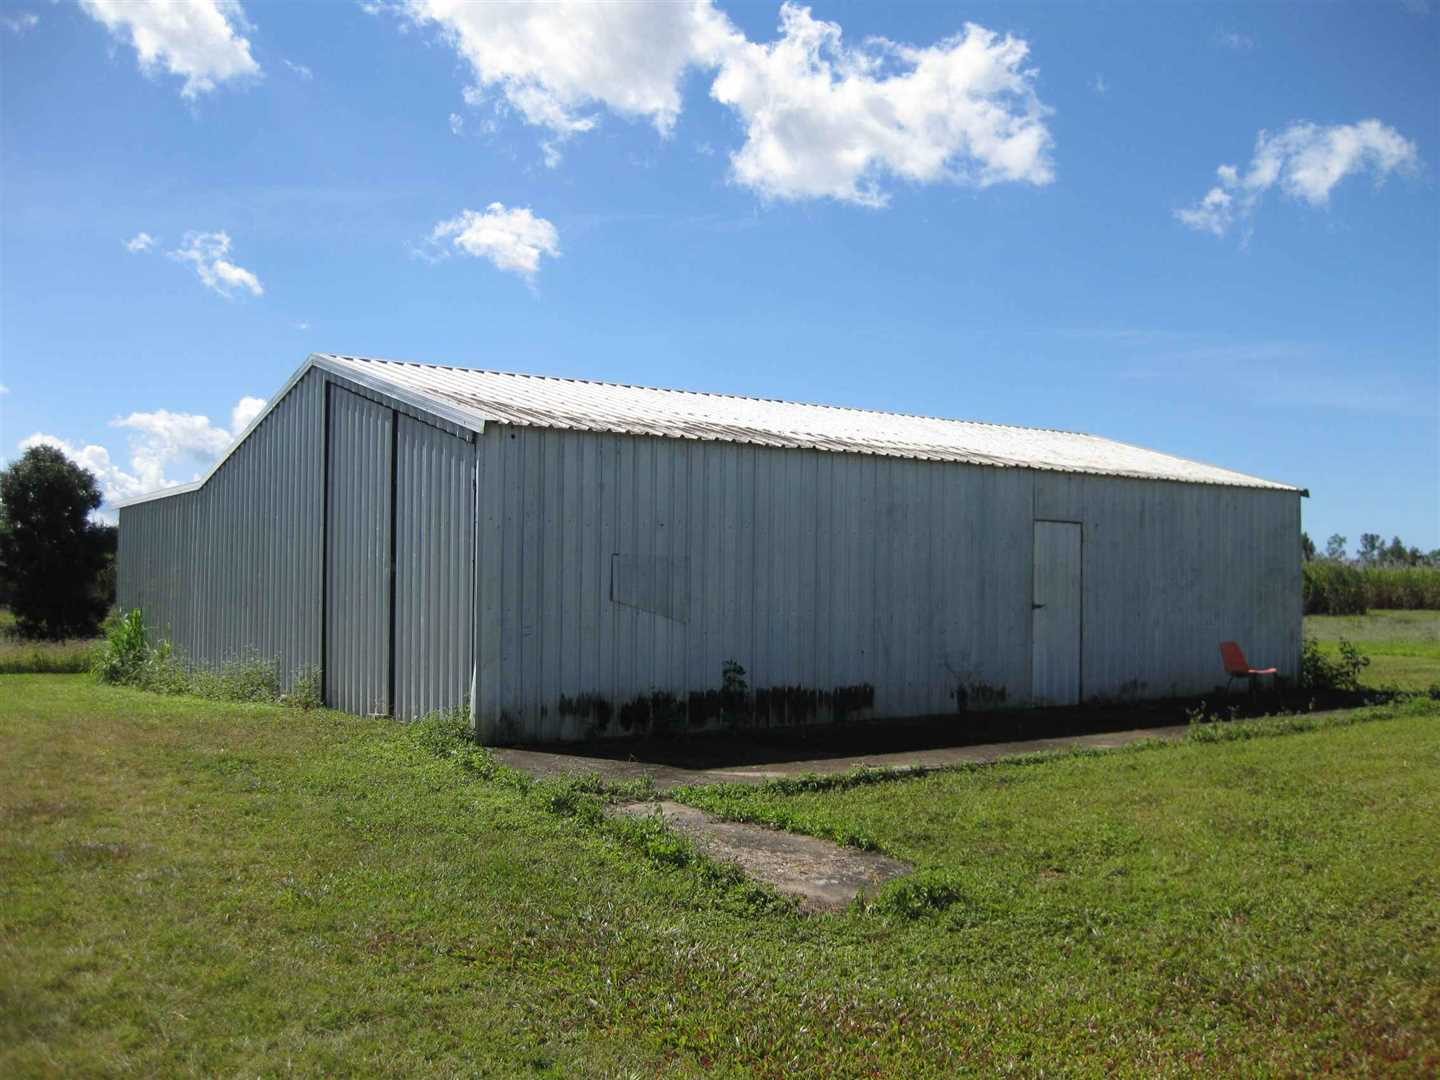 View of part of large lockable shed